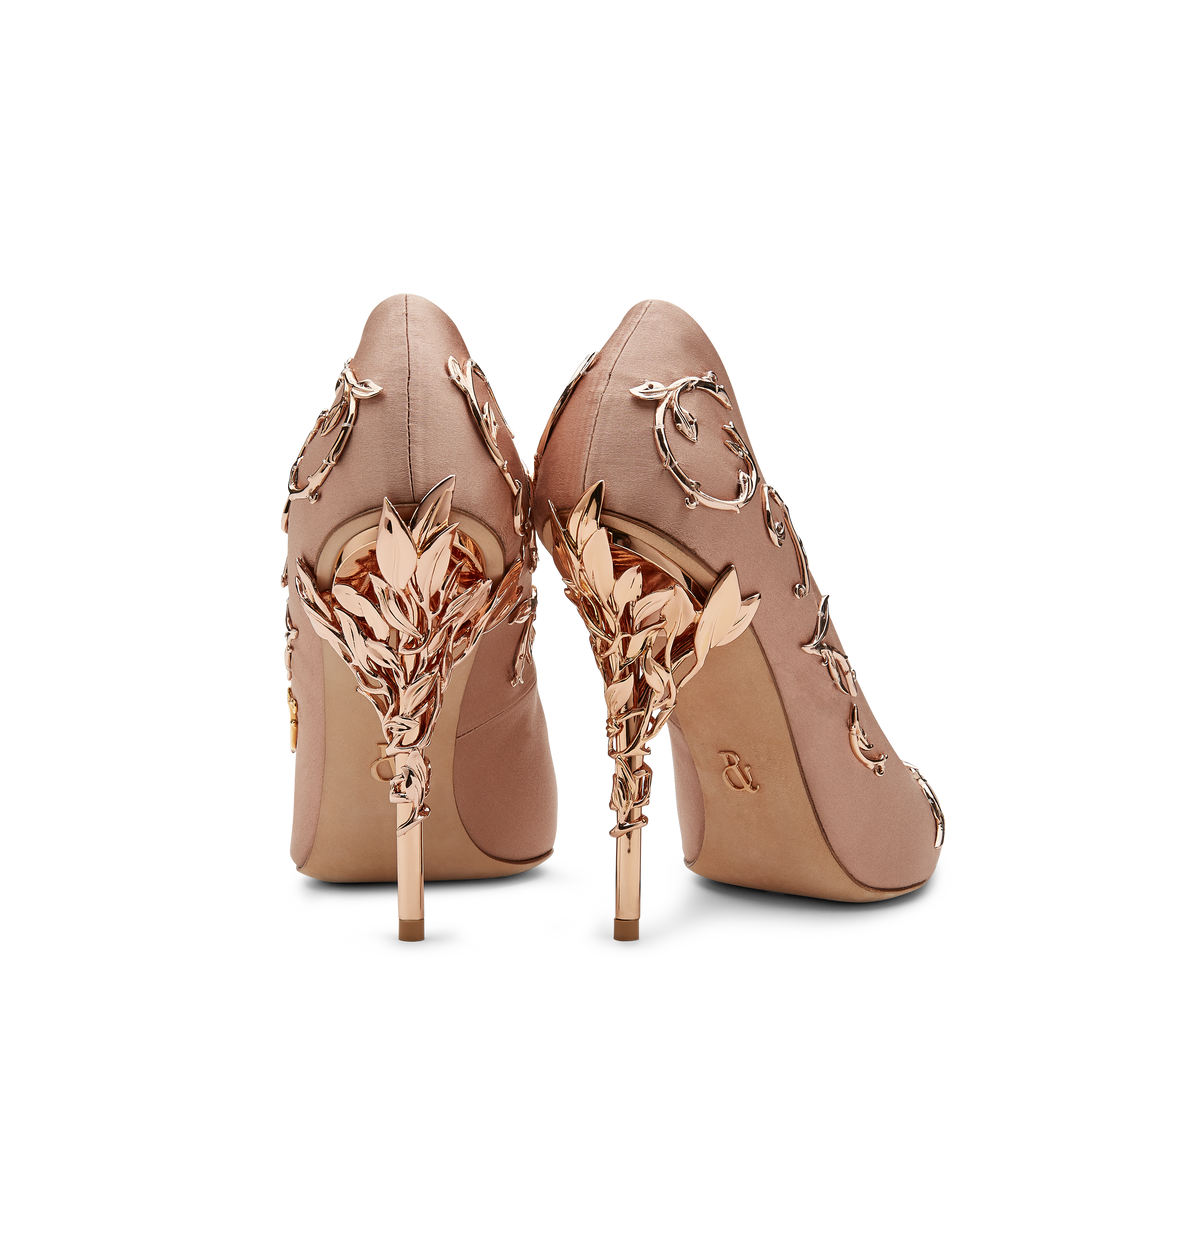 Vintage Pink Satin Eden Heels with Rose Gold Leaves